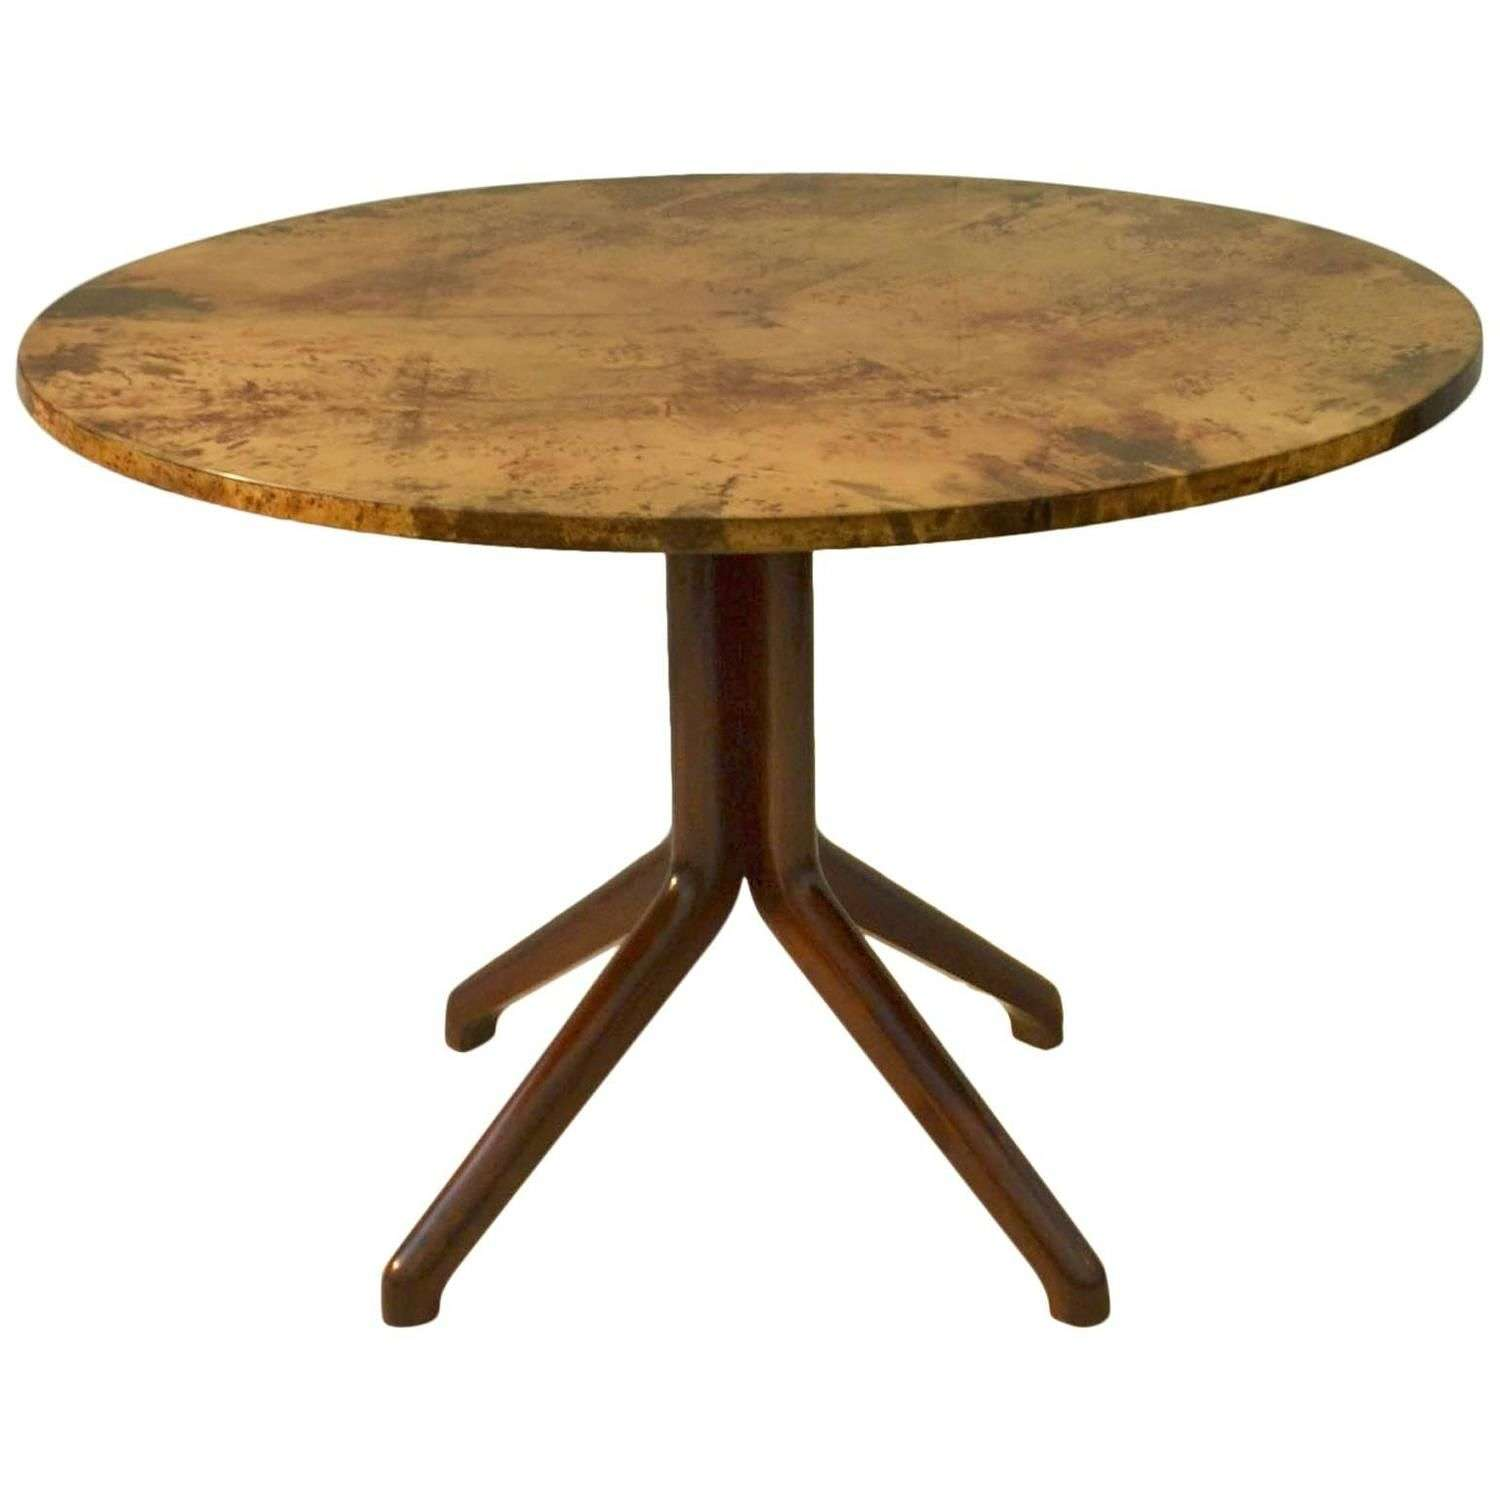 Dining Table by Aldo Tura, Parchment and Ebonized Wood